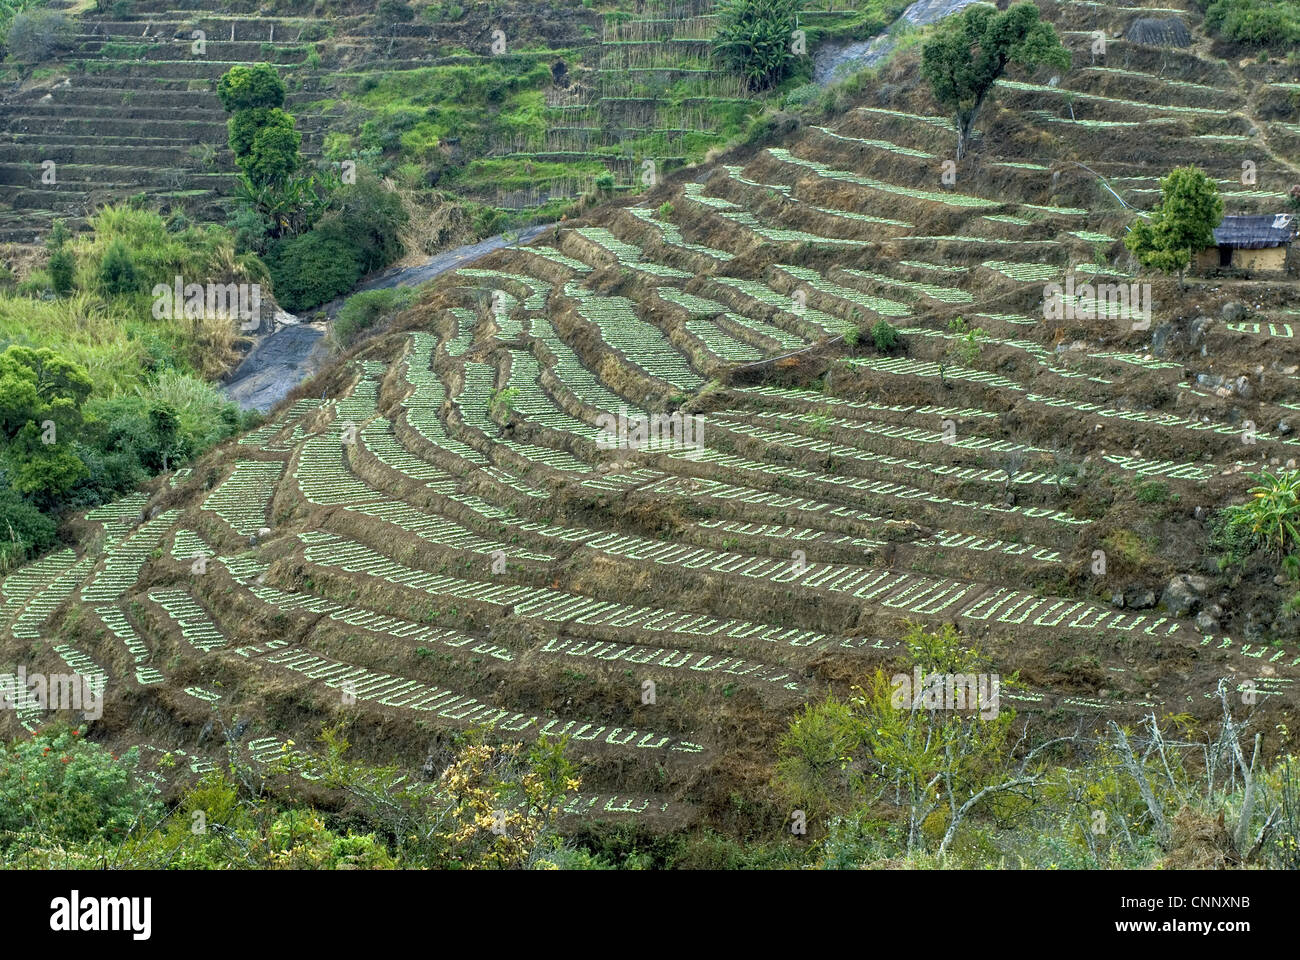 Terrace cultivation mountain slope terraced farming stock for What is terracing